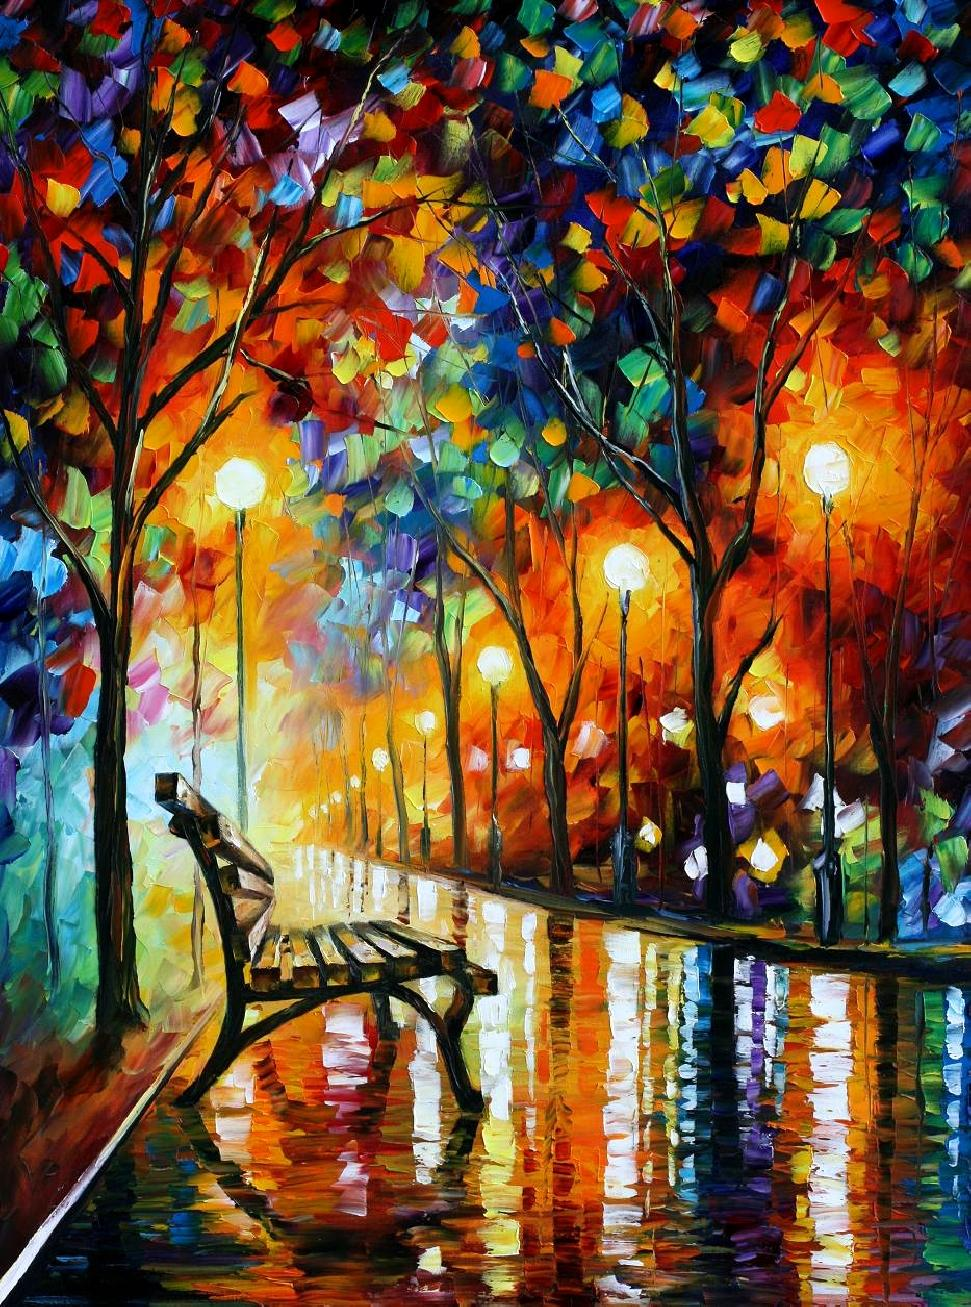 Arquitectura dise o leonid afremov for Artist canvas paint color